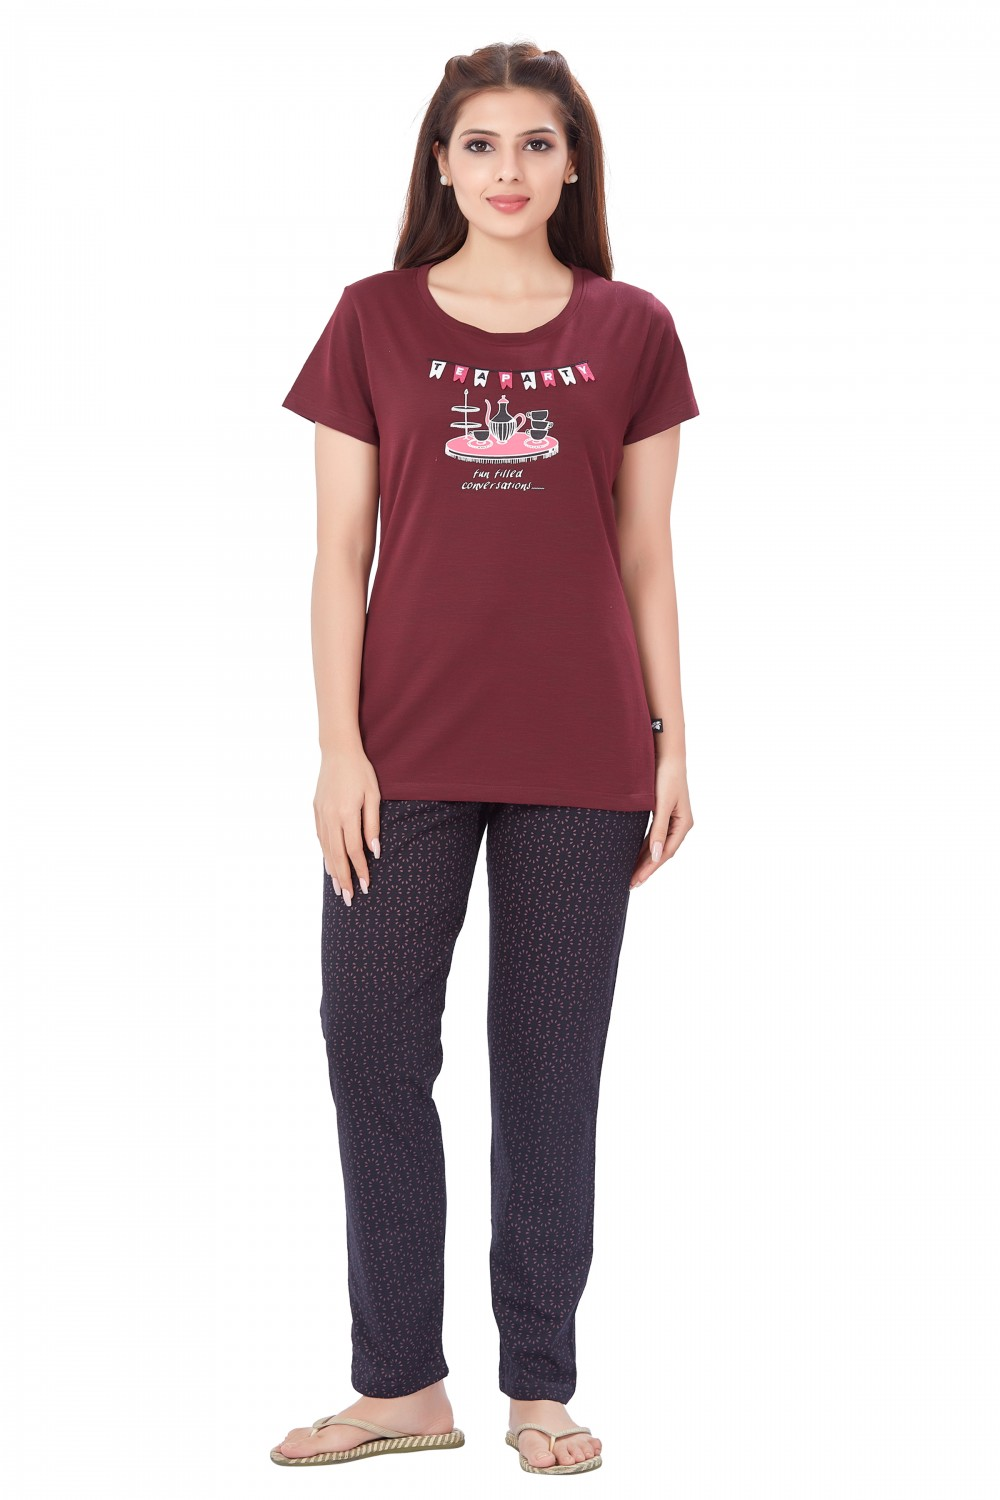 July Nightwear for women T- Shirt   Pyjama-PC736